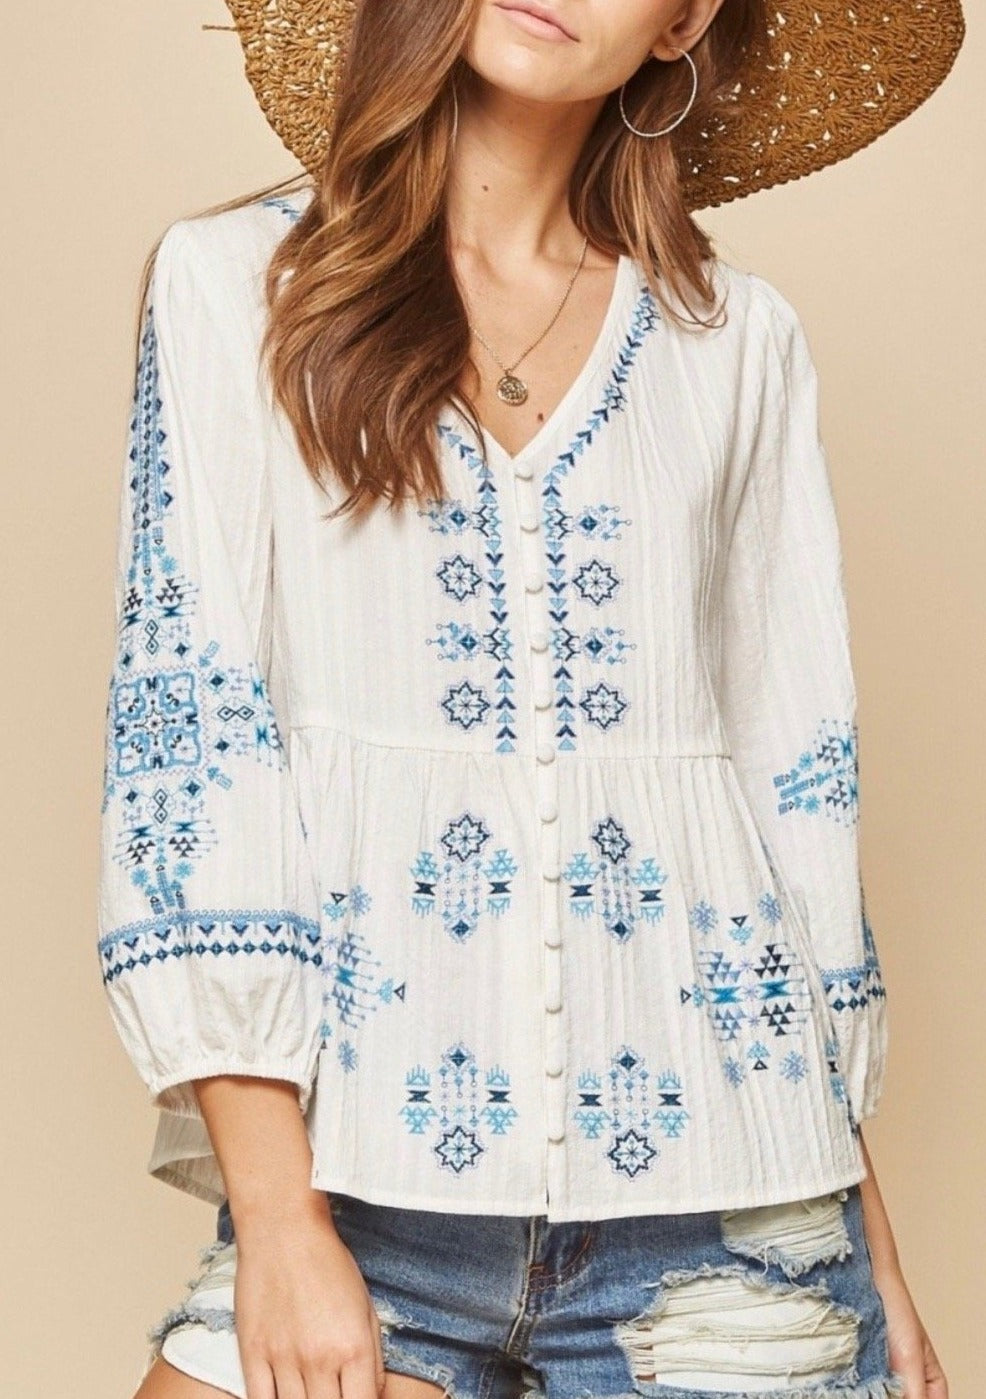 Summer Breeze Embroidered Baby Doll Top